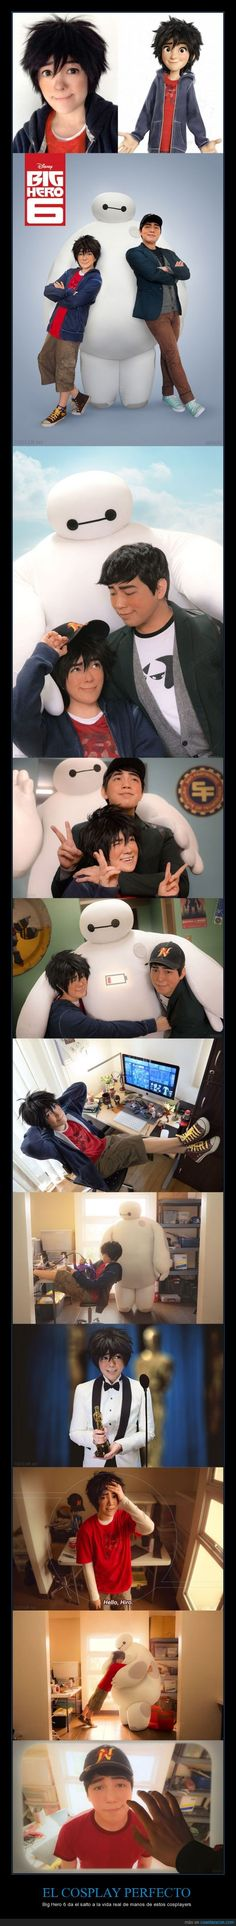 EL COSPLAY PERFECTO - Big Hero 6 da el salto a la vida real de manos de estos cosplayers